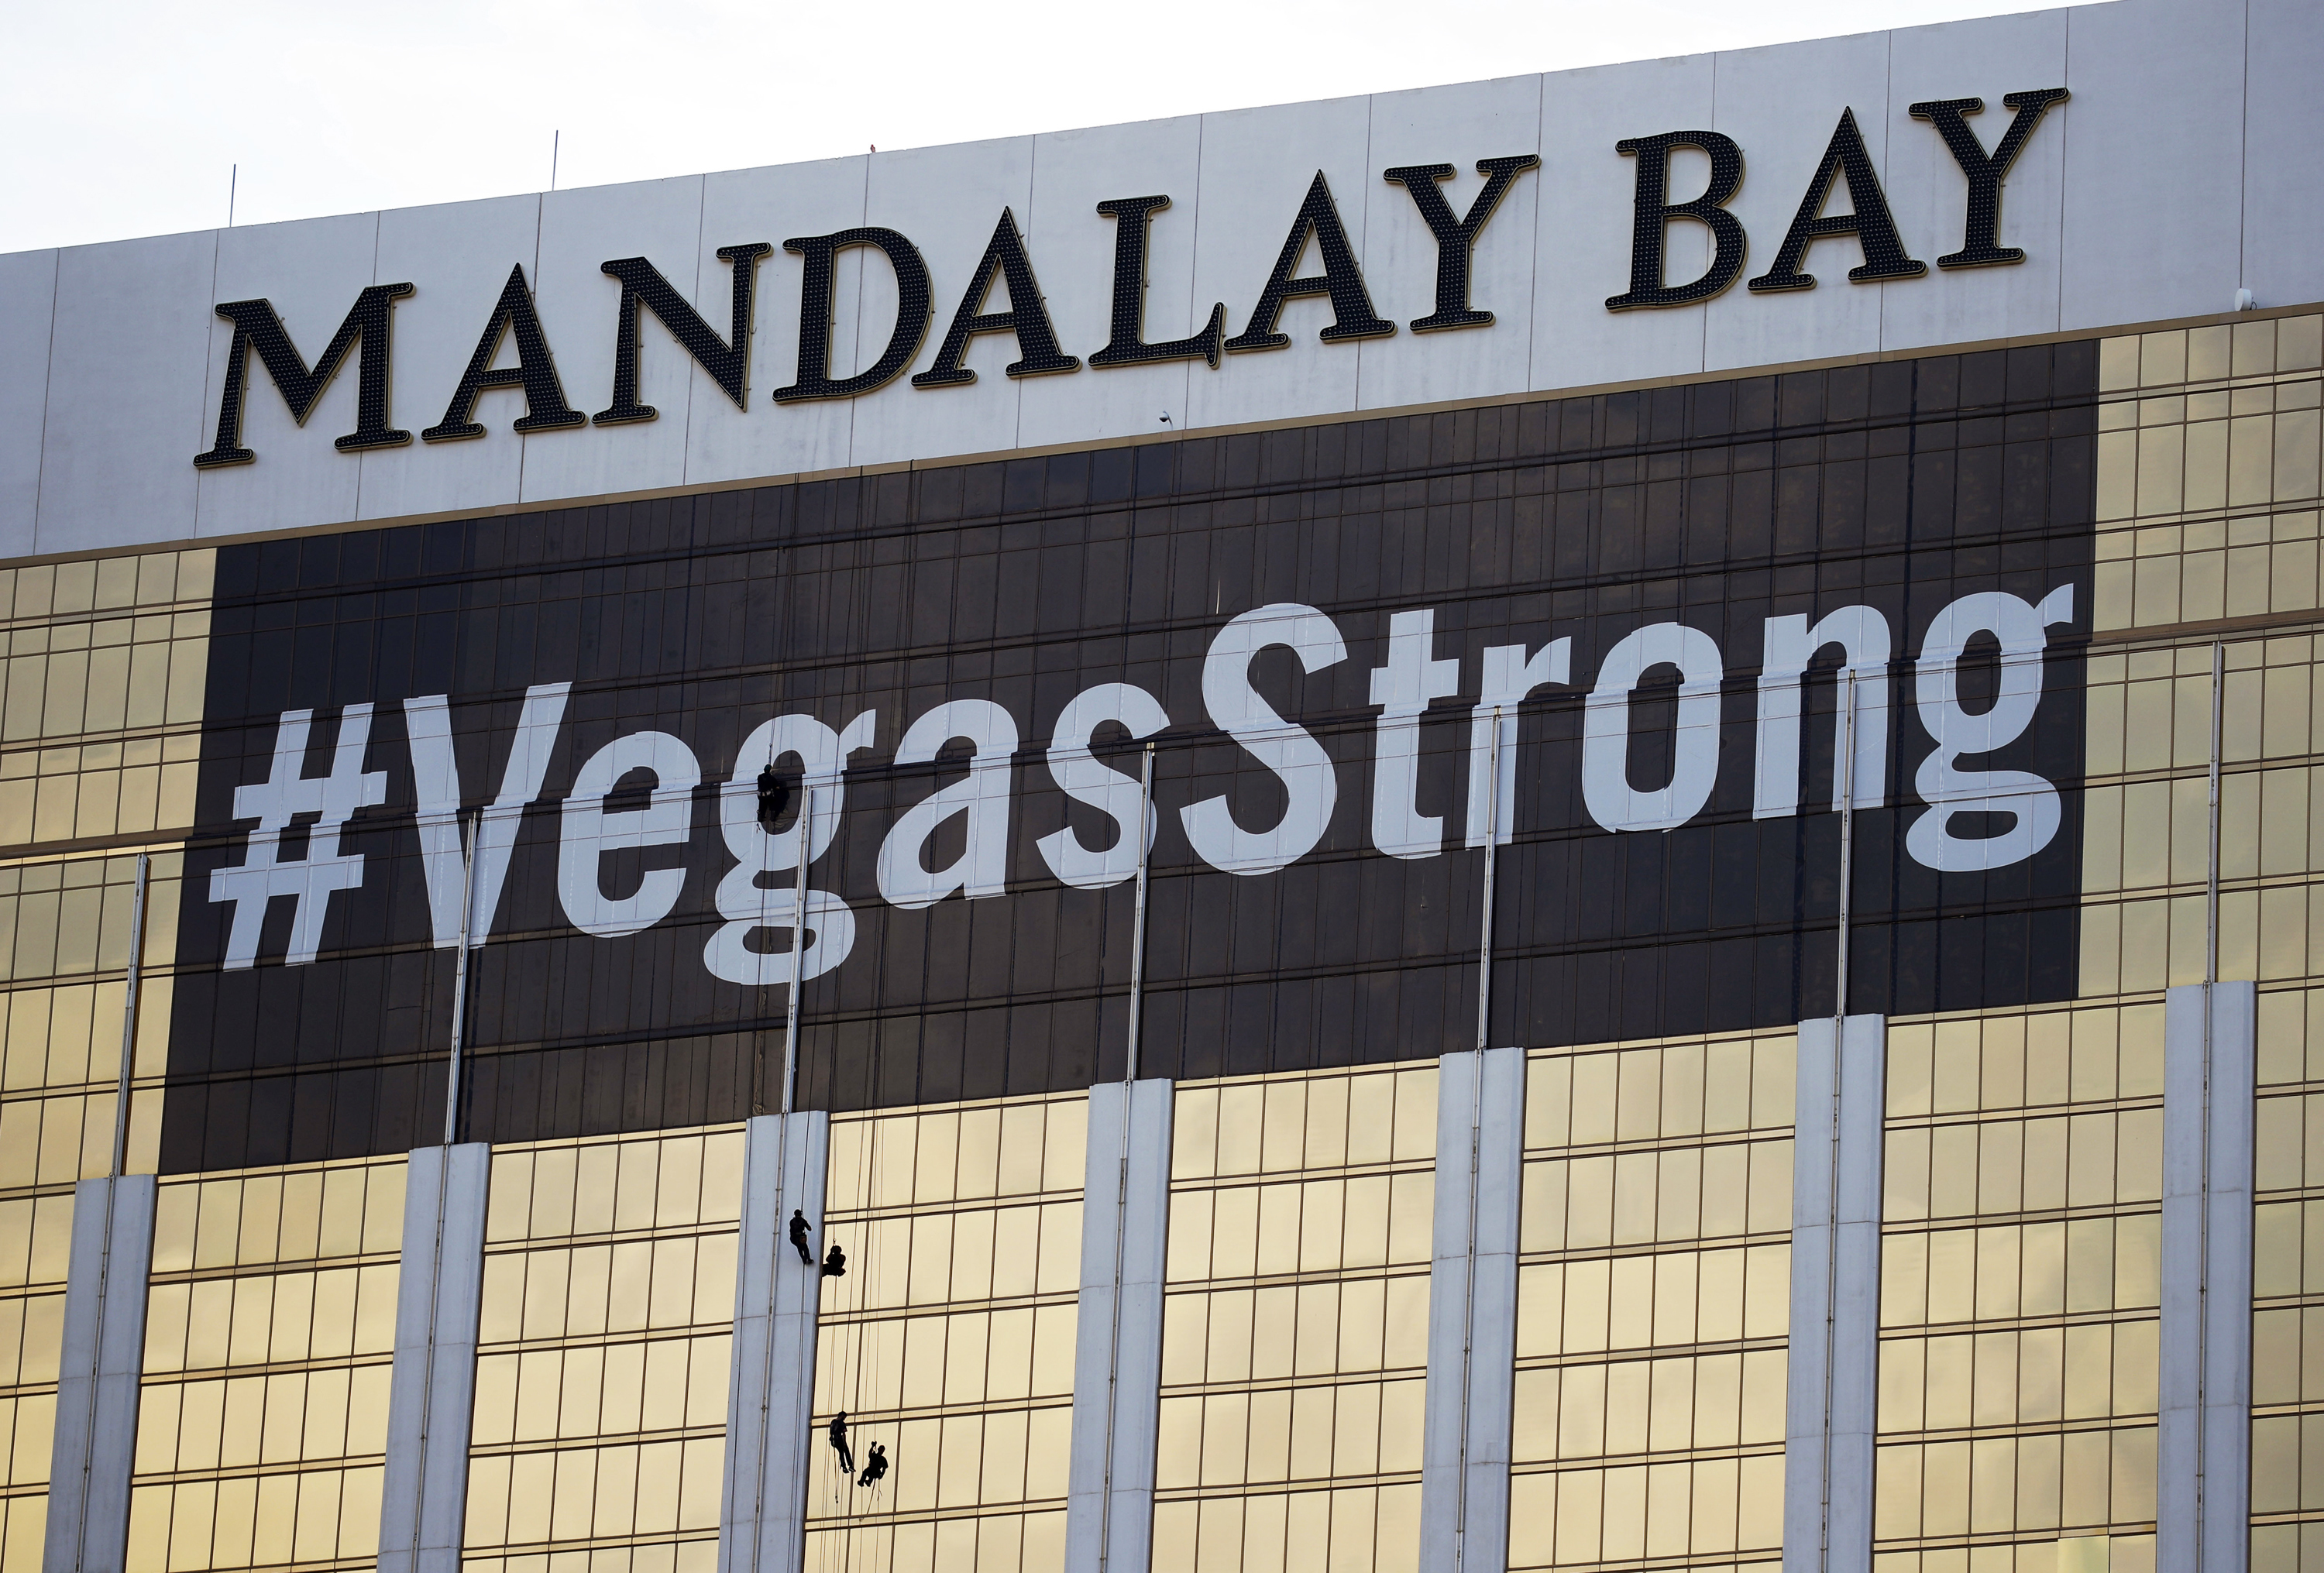 In the aftermath of the Las Vegas shooting, a 14-year-old catchphrase is quietly halted